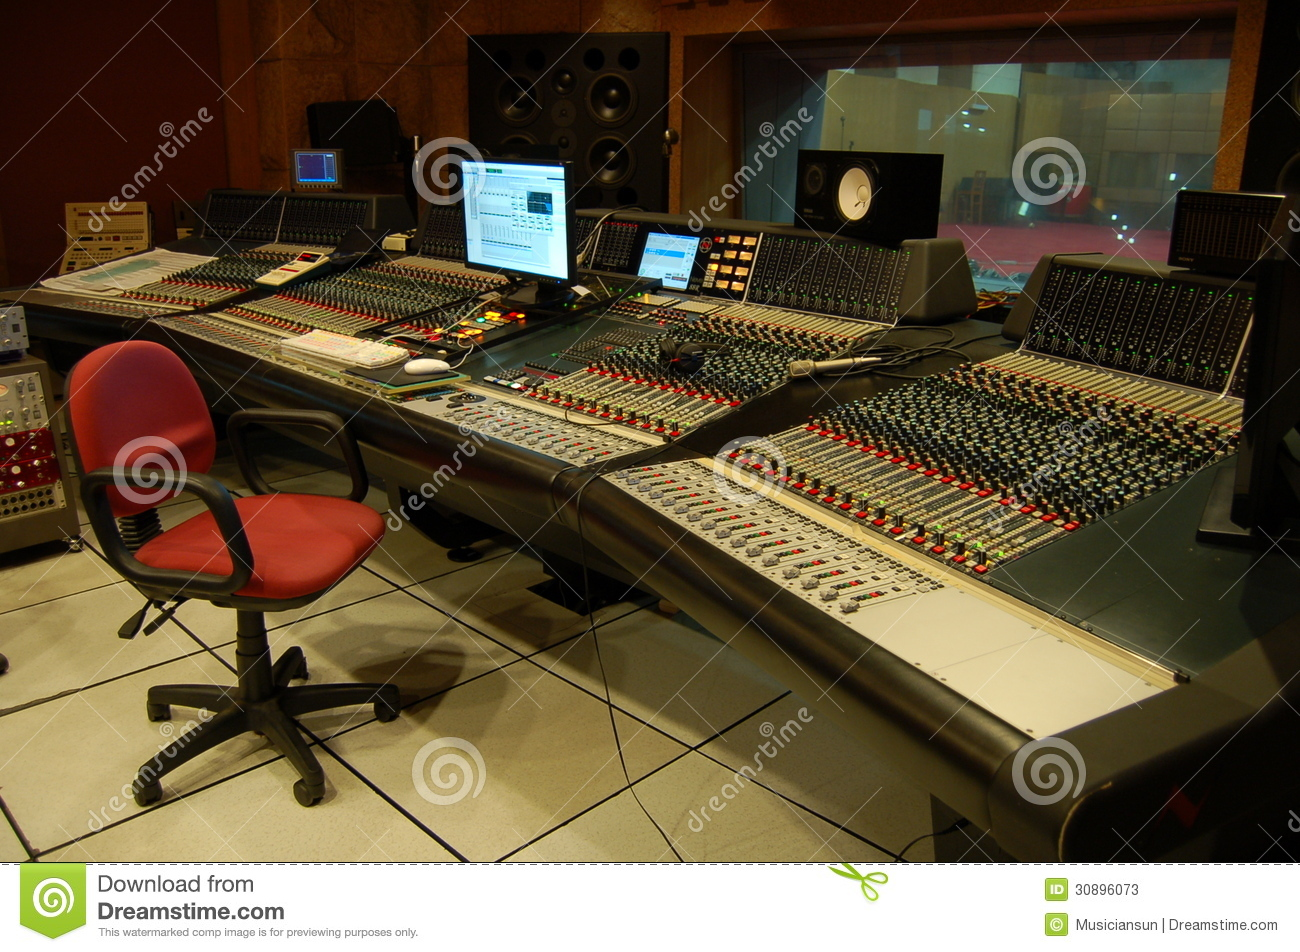 Pleasing The Control Room Of A Professional Music Recording Studio Stock Largest Home Design Picture Inspirations Pitcheantrous